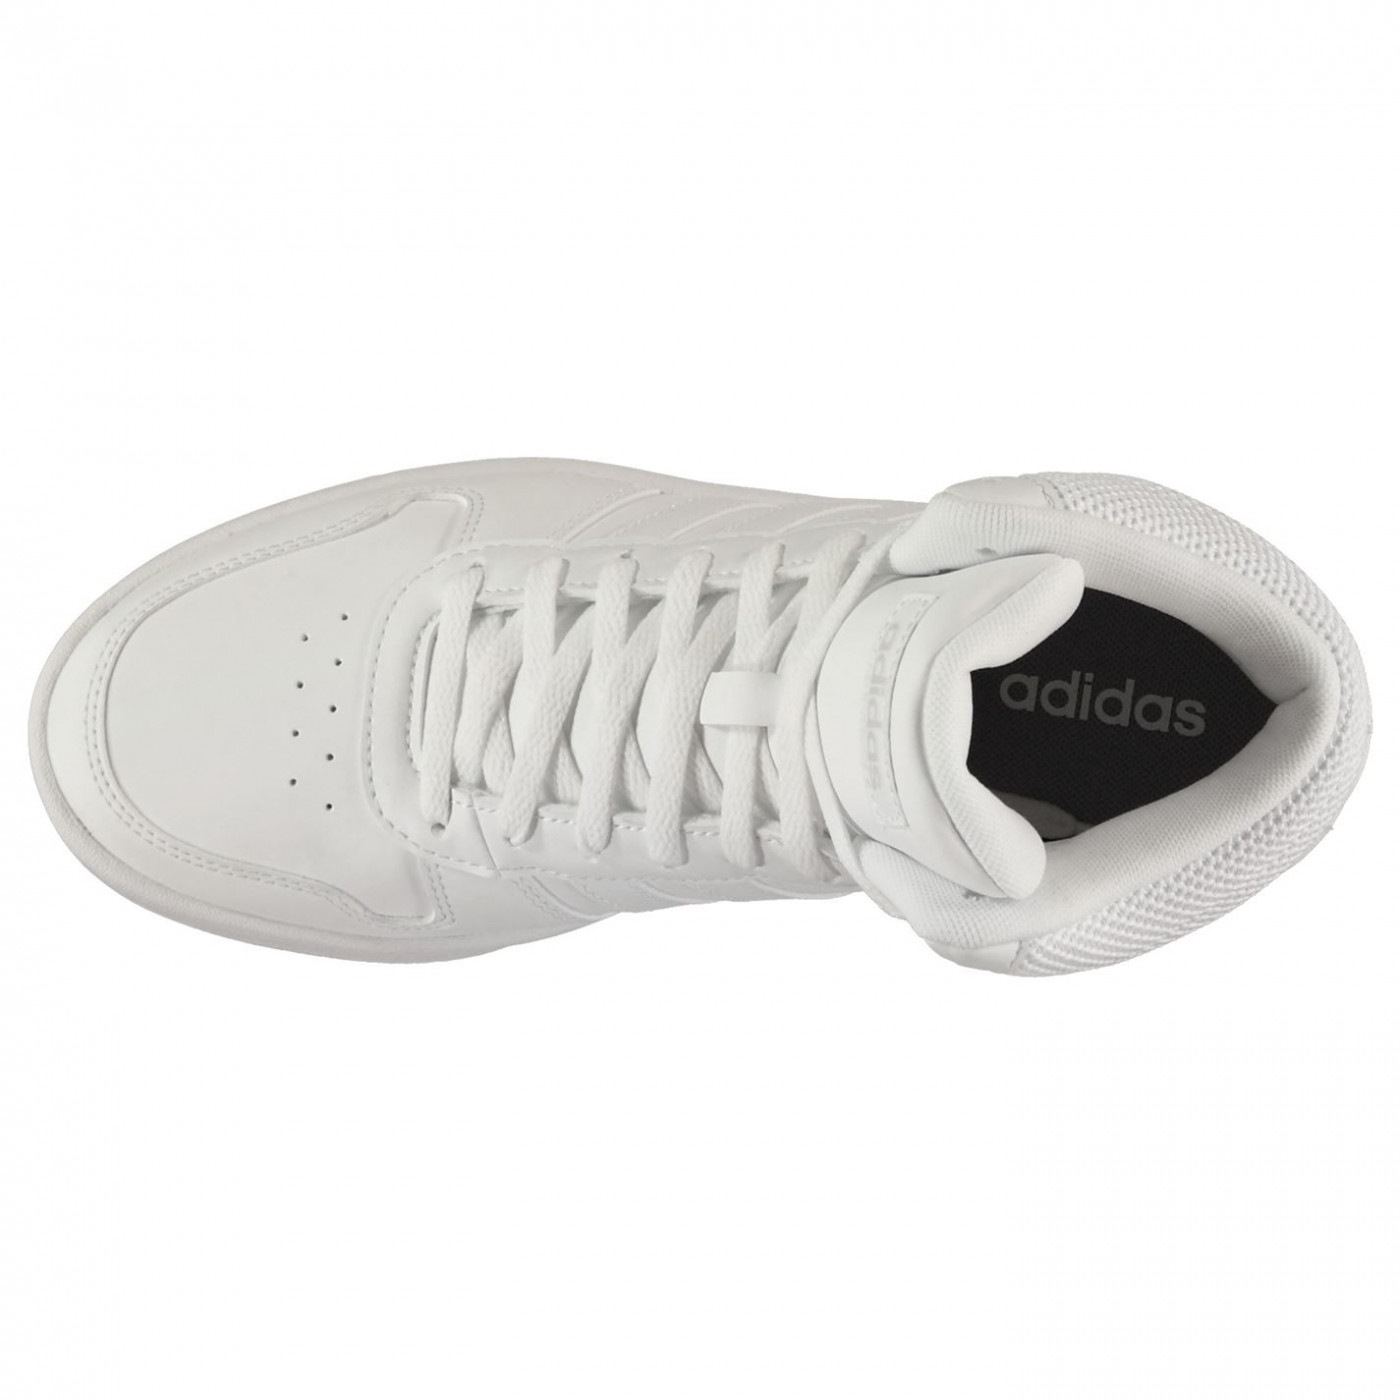 Adidas Hoops 2.0 Mid Trainers Womens